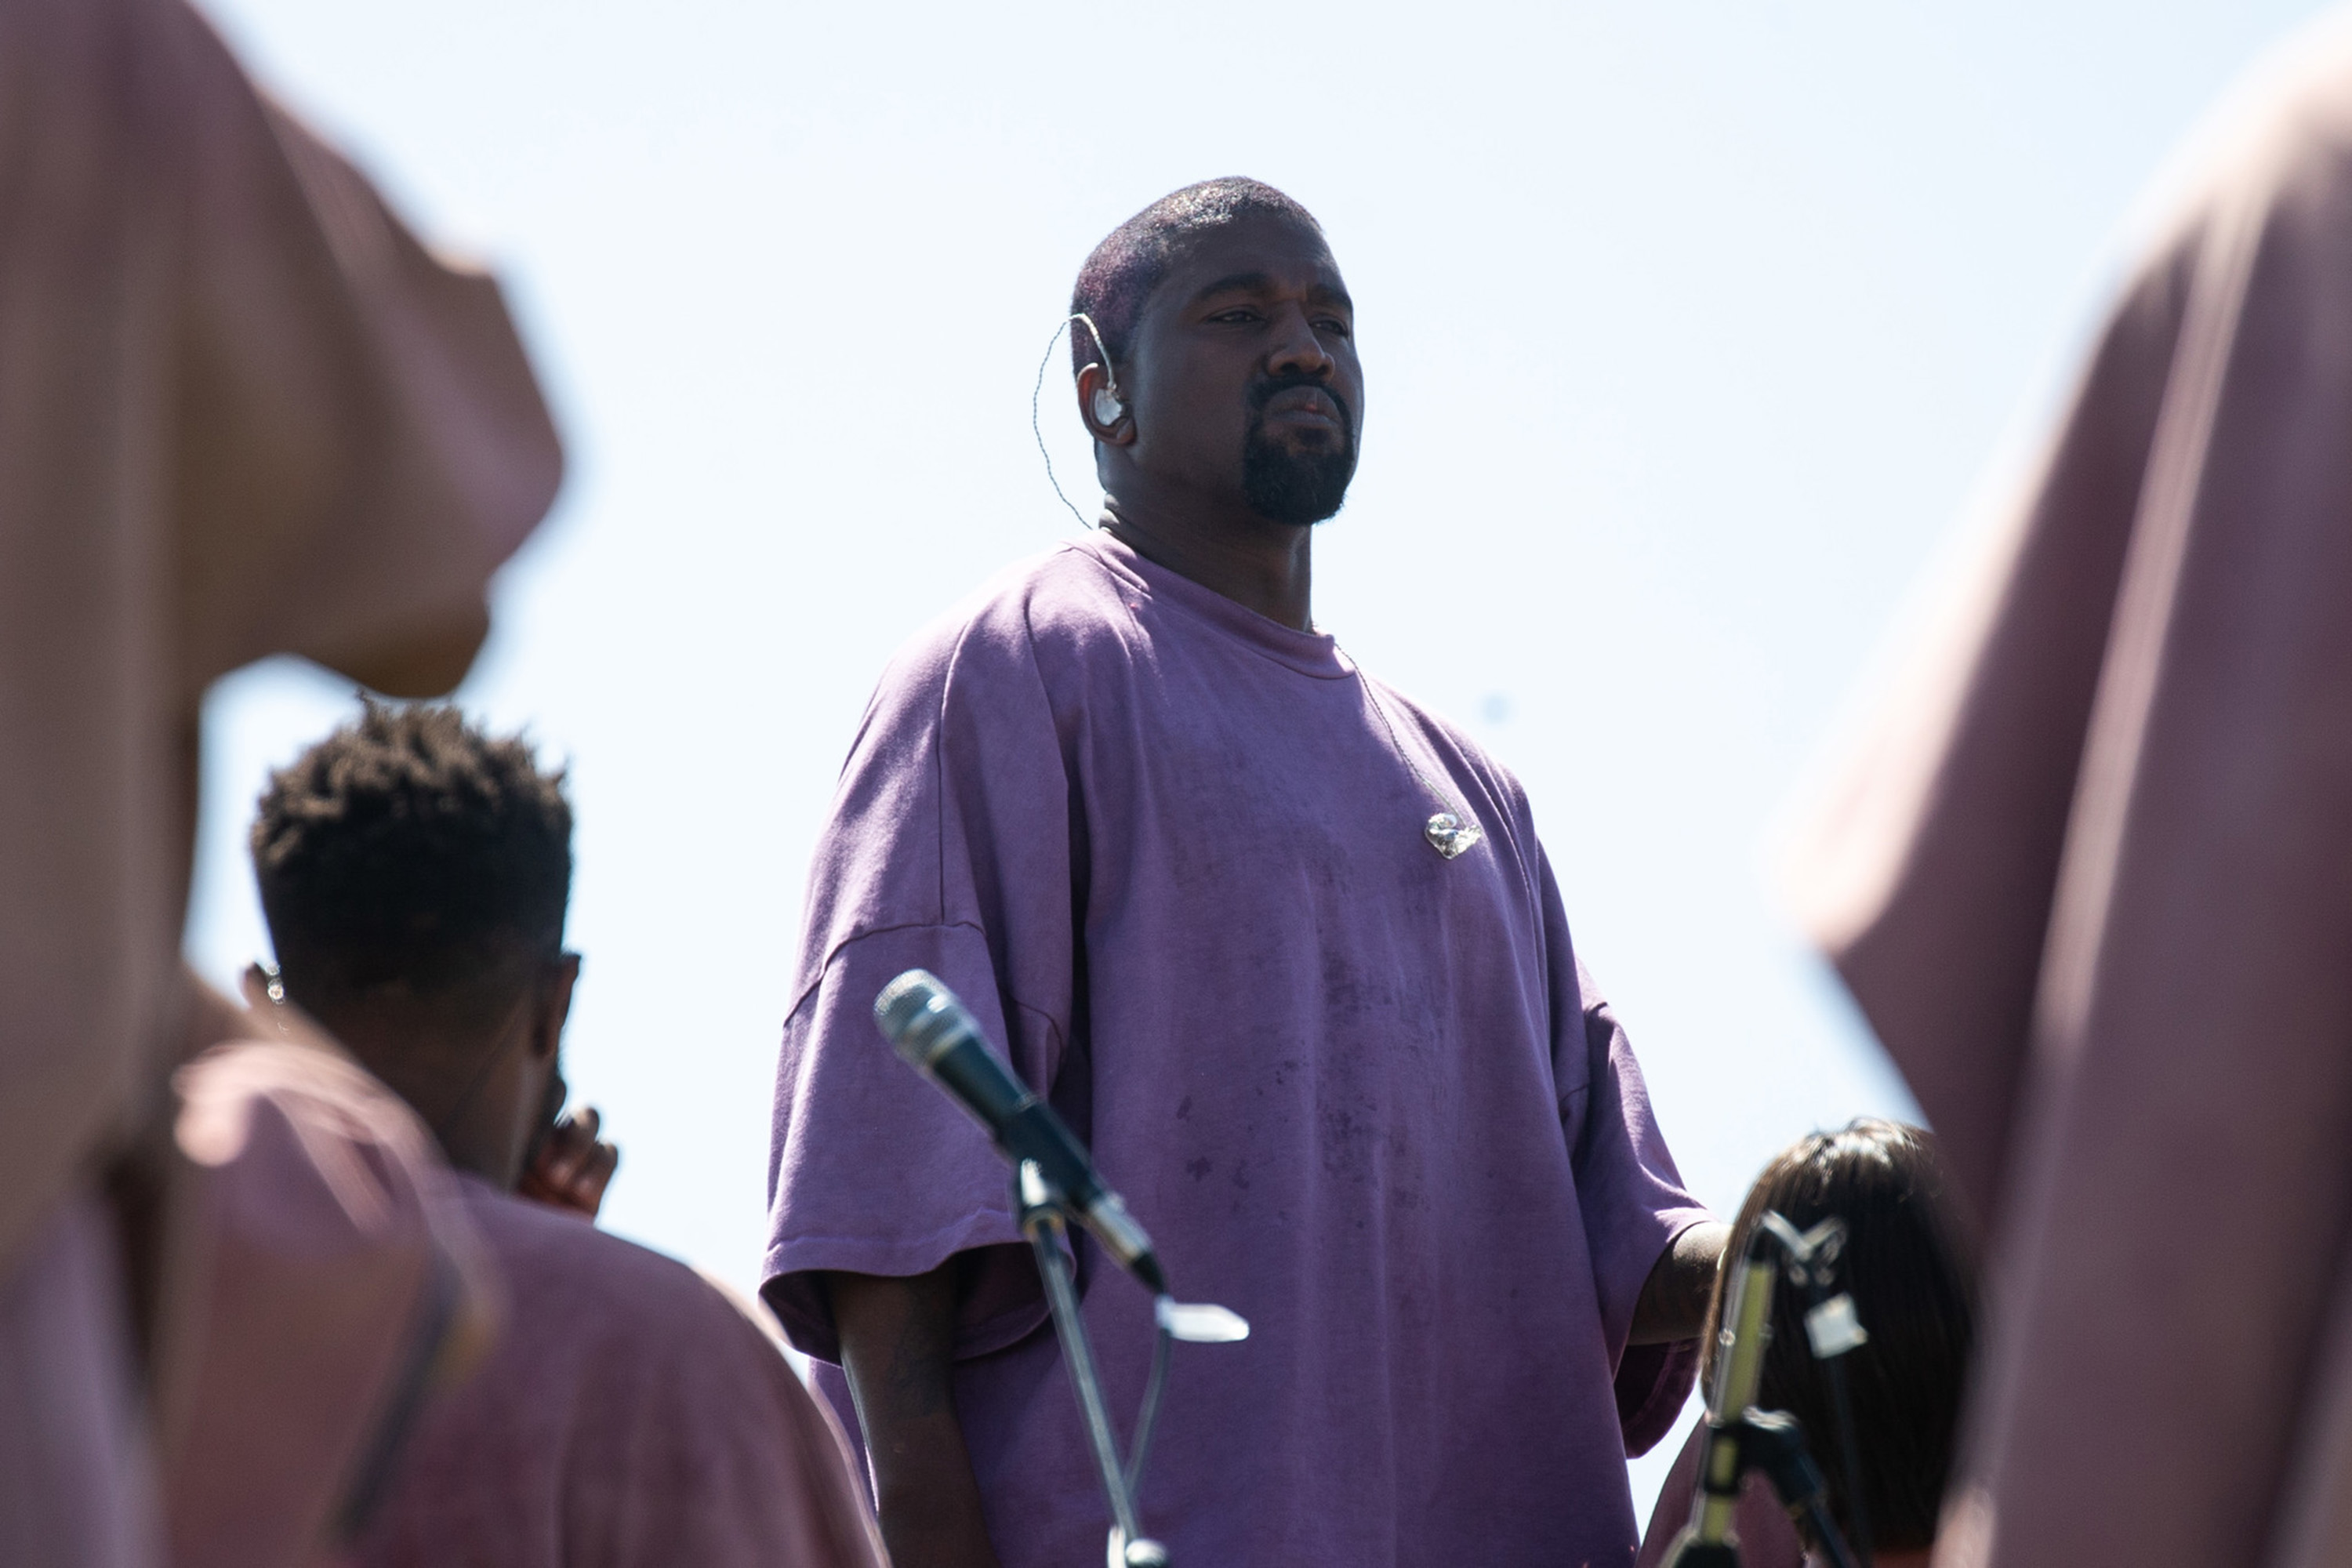 Kanye West, pictured at Coachella in April, presented a playback of his new album and film Oct. 23 at the Forum. (Kent Nishimura/Los Angeles Times/TNS)